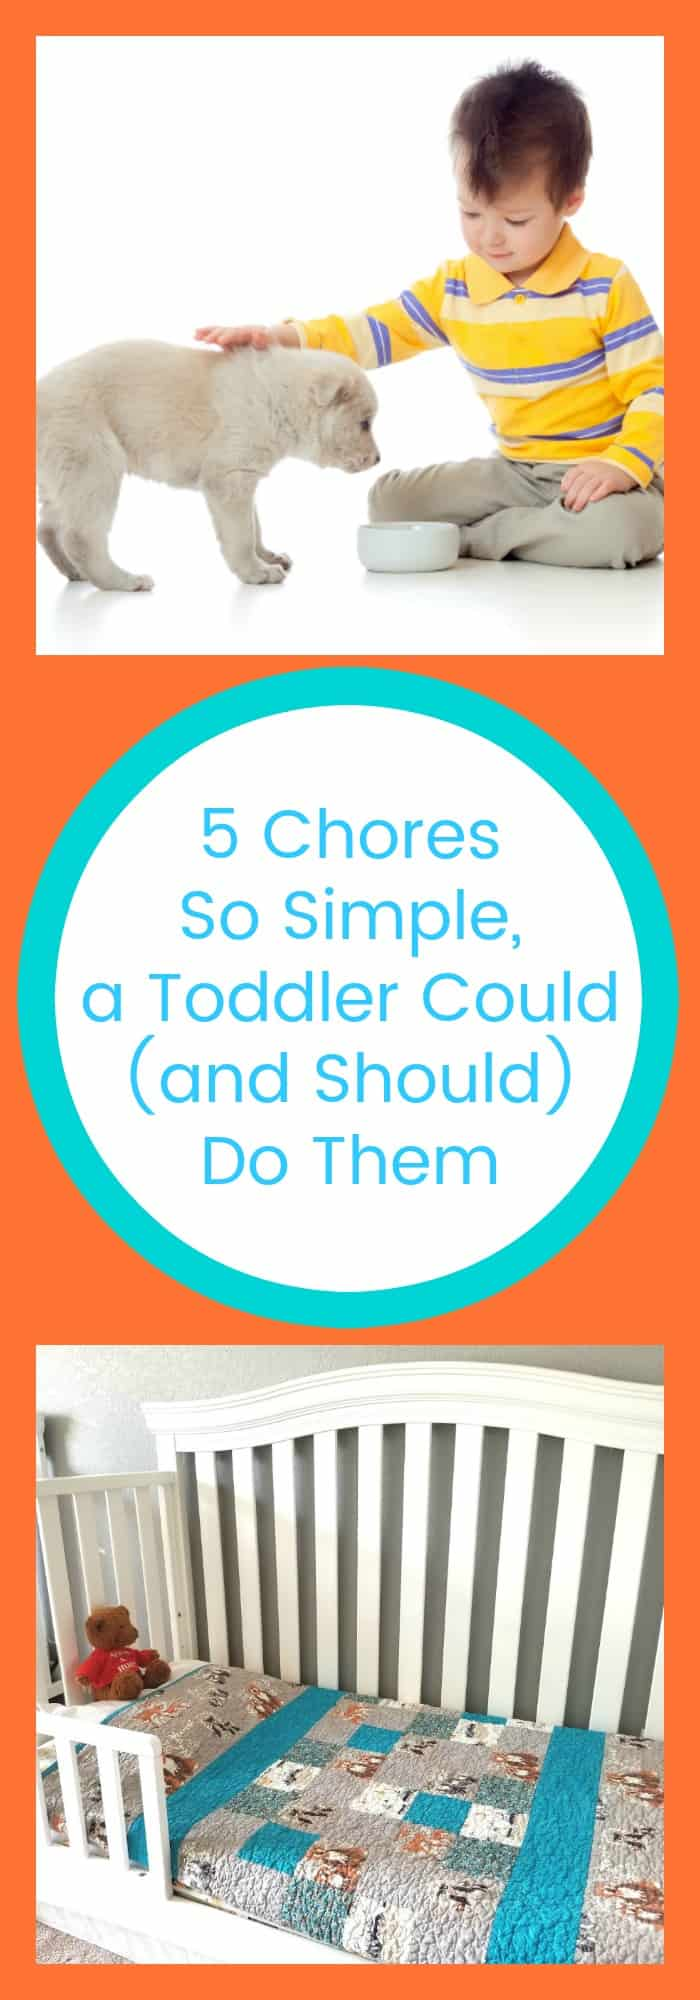 Kids--5 Chores So Simple, a Toddler Could (and Should) Do Them--The Organized Mom